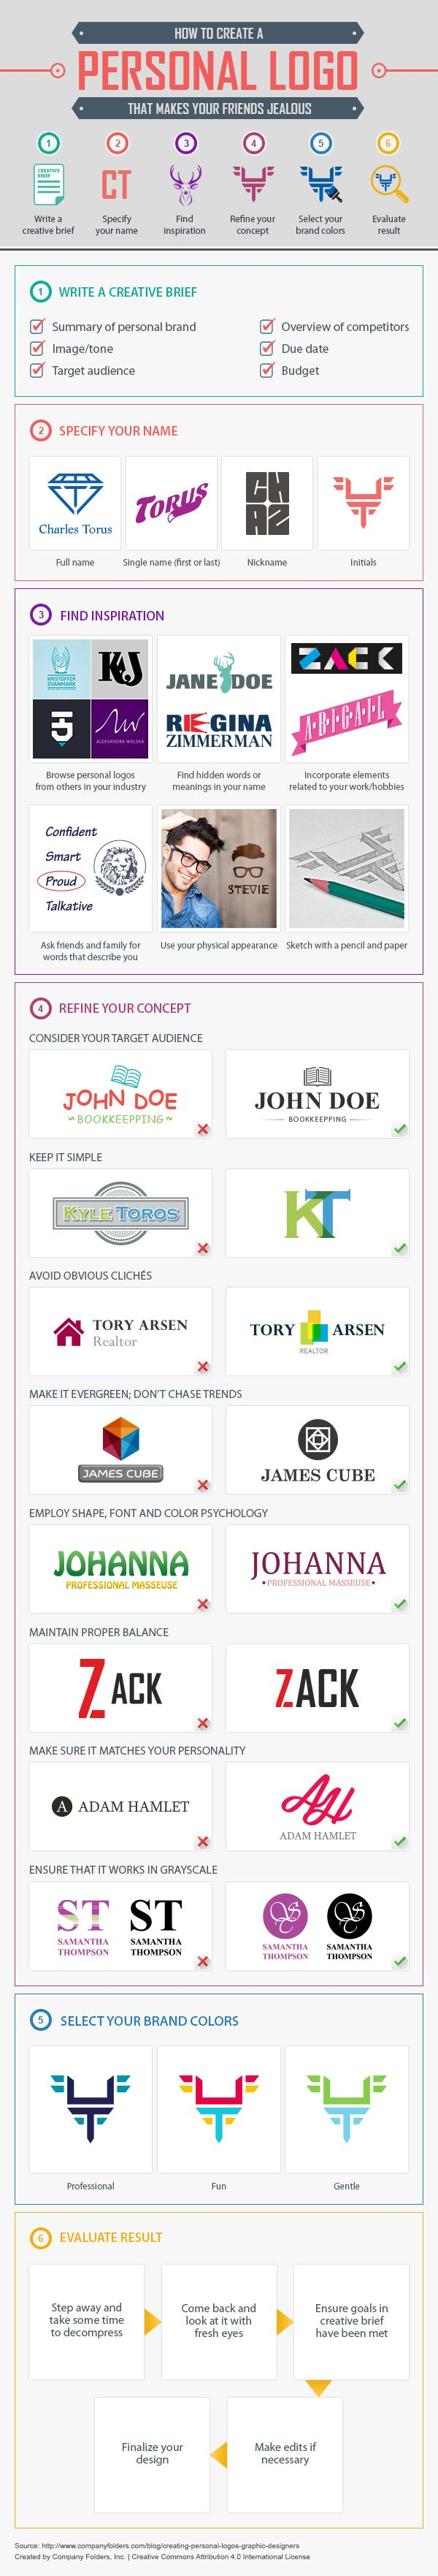 58 best interesting graphic design articles images on pinterest